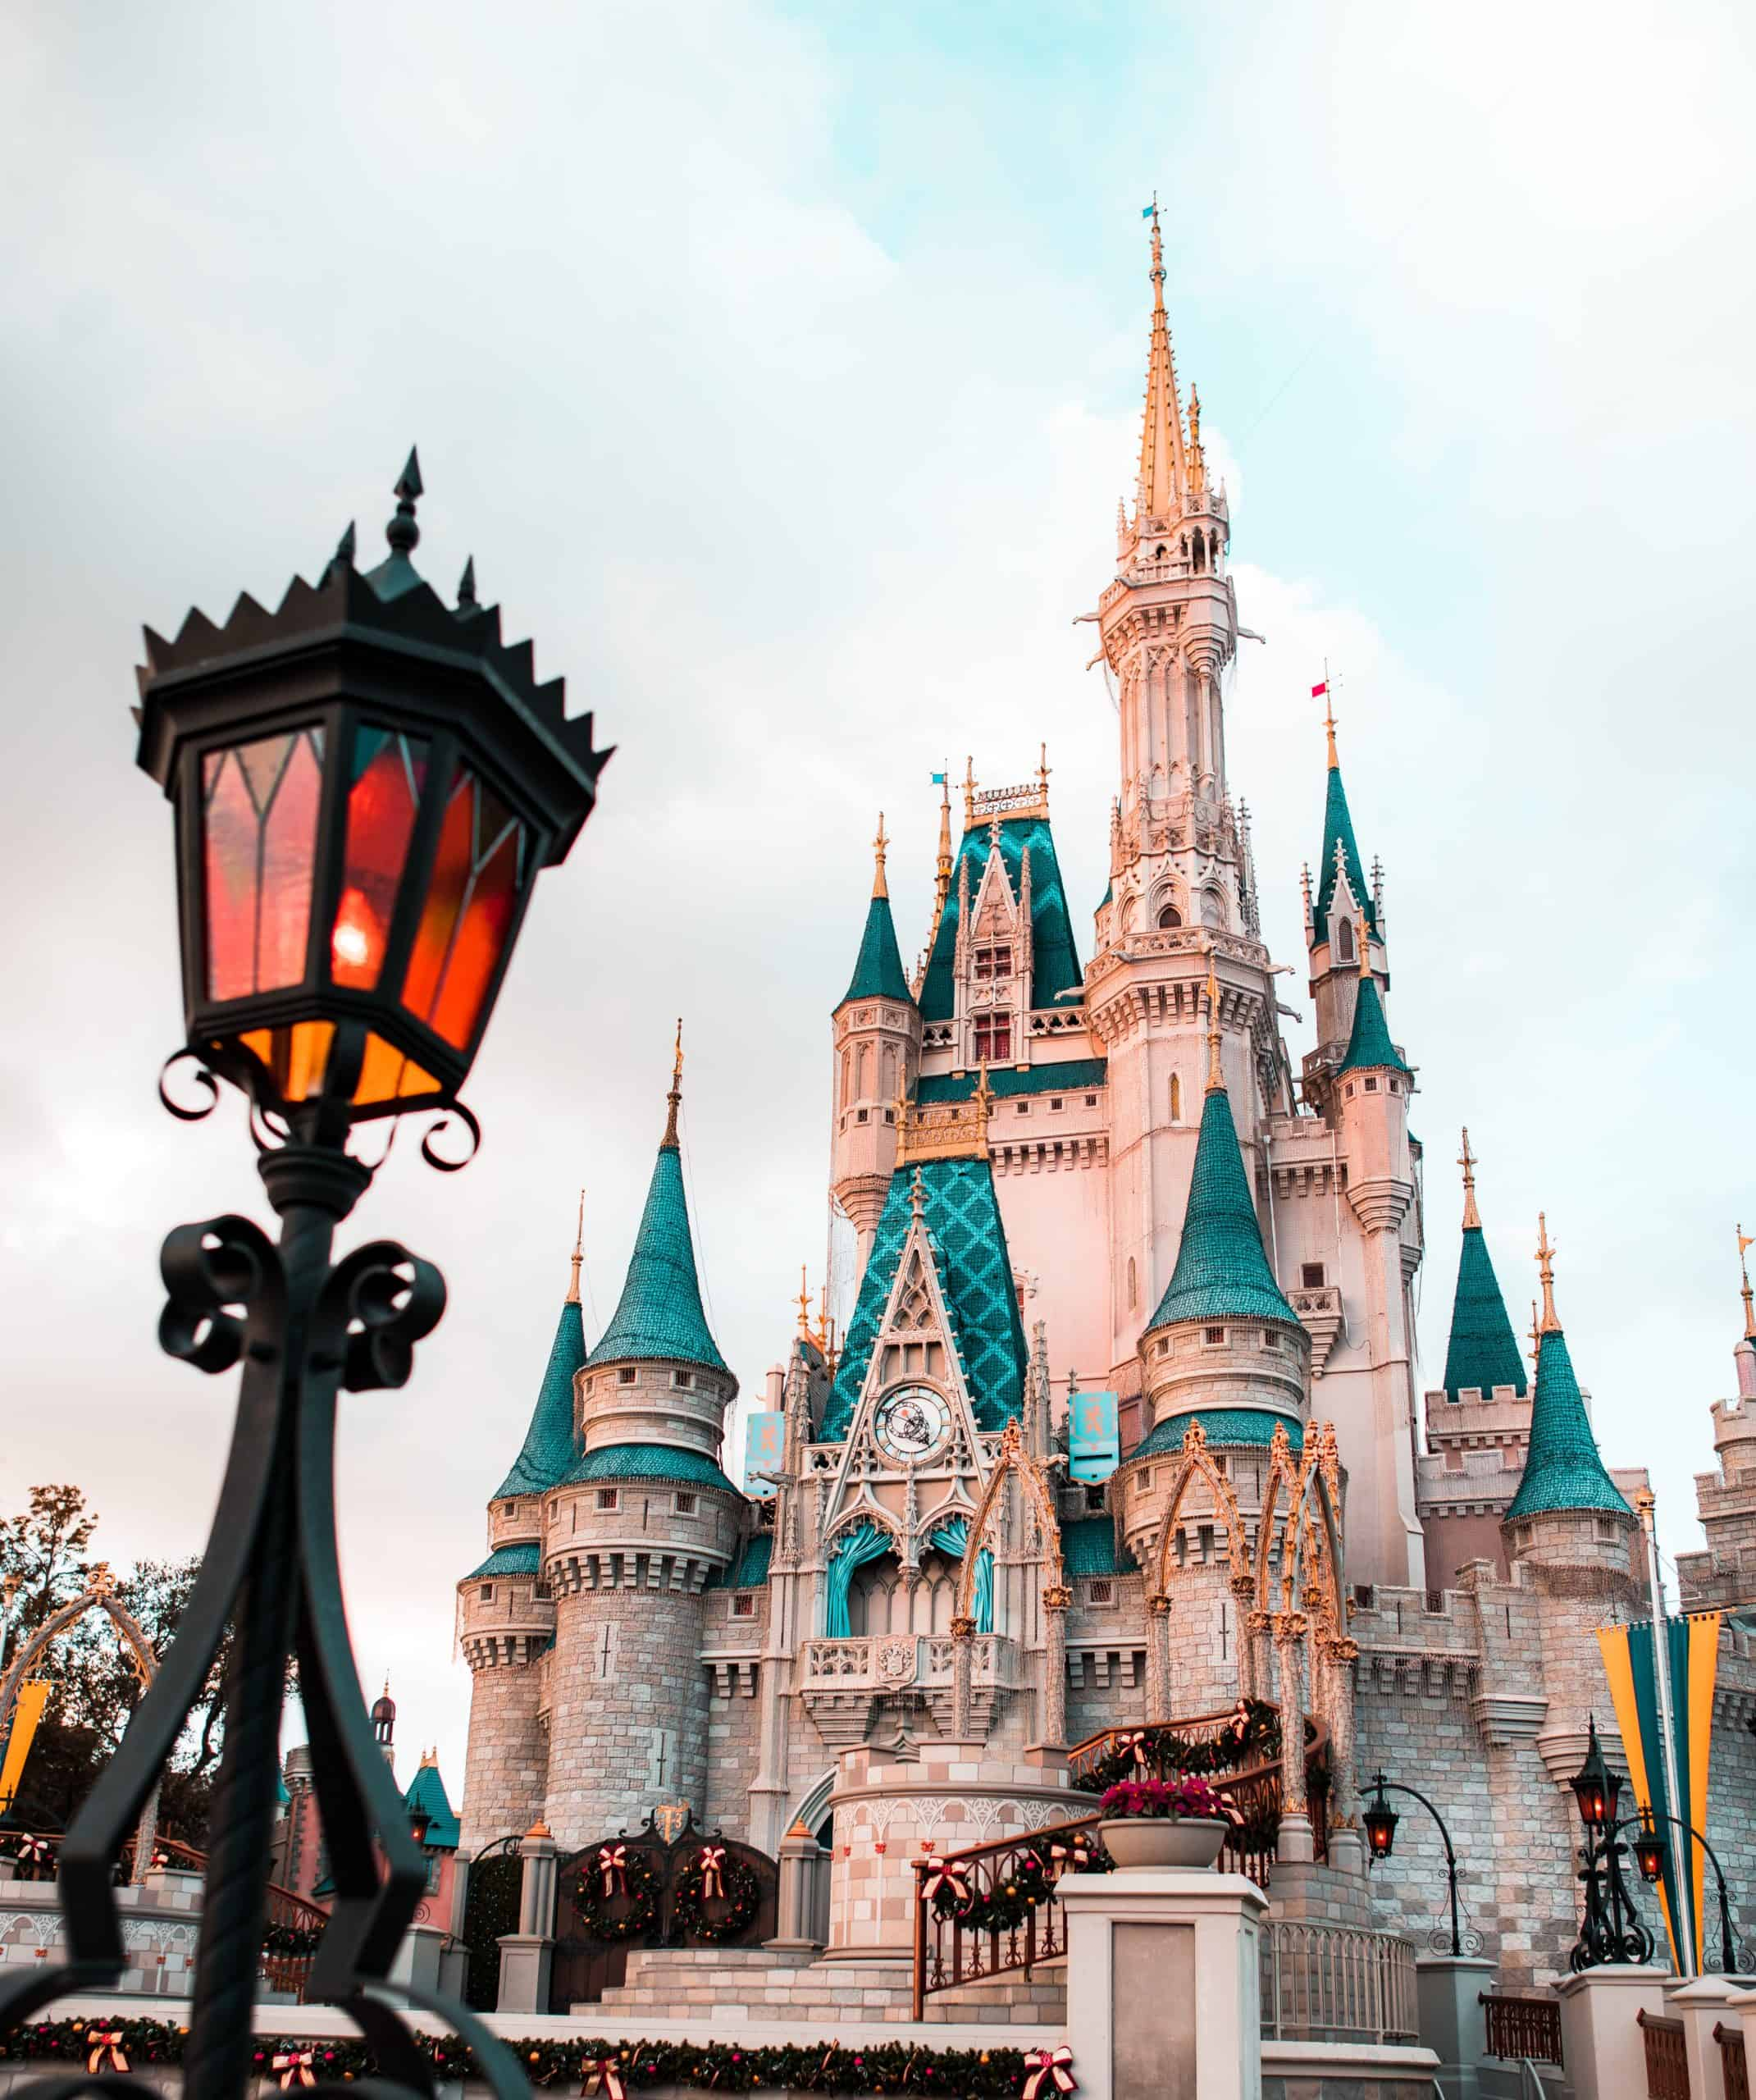 If you've been to Disneyland or Disneyworld around Easter, drop a comment below and let me know all about your experience!